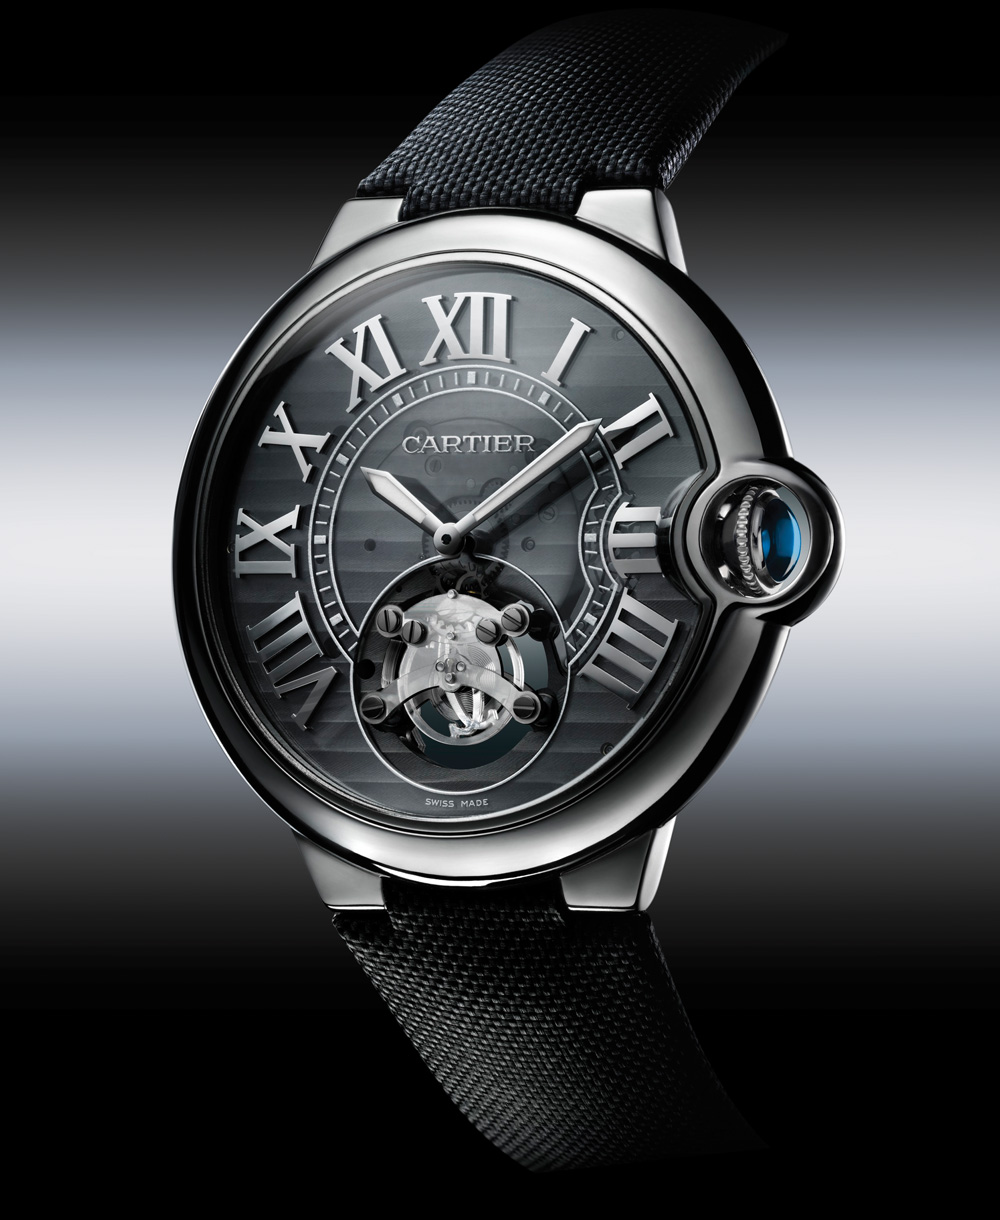 The synthetic-diamond regulator first seen in the Cartier ID One (pictured) is utilized in the escapement of the recently unveiled Astrotourbillon Carbon Crystal.